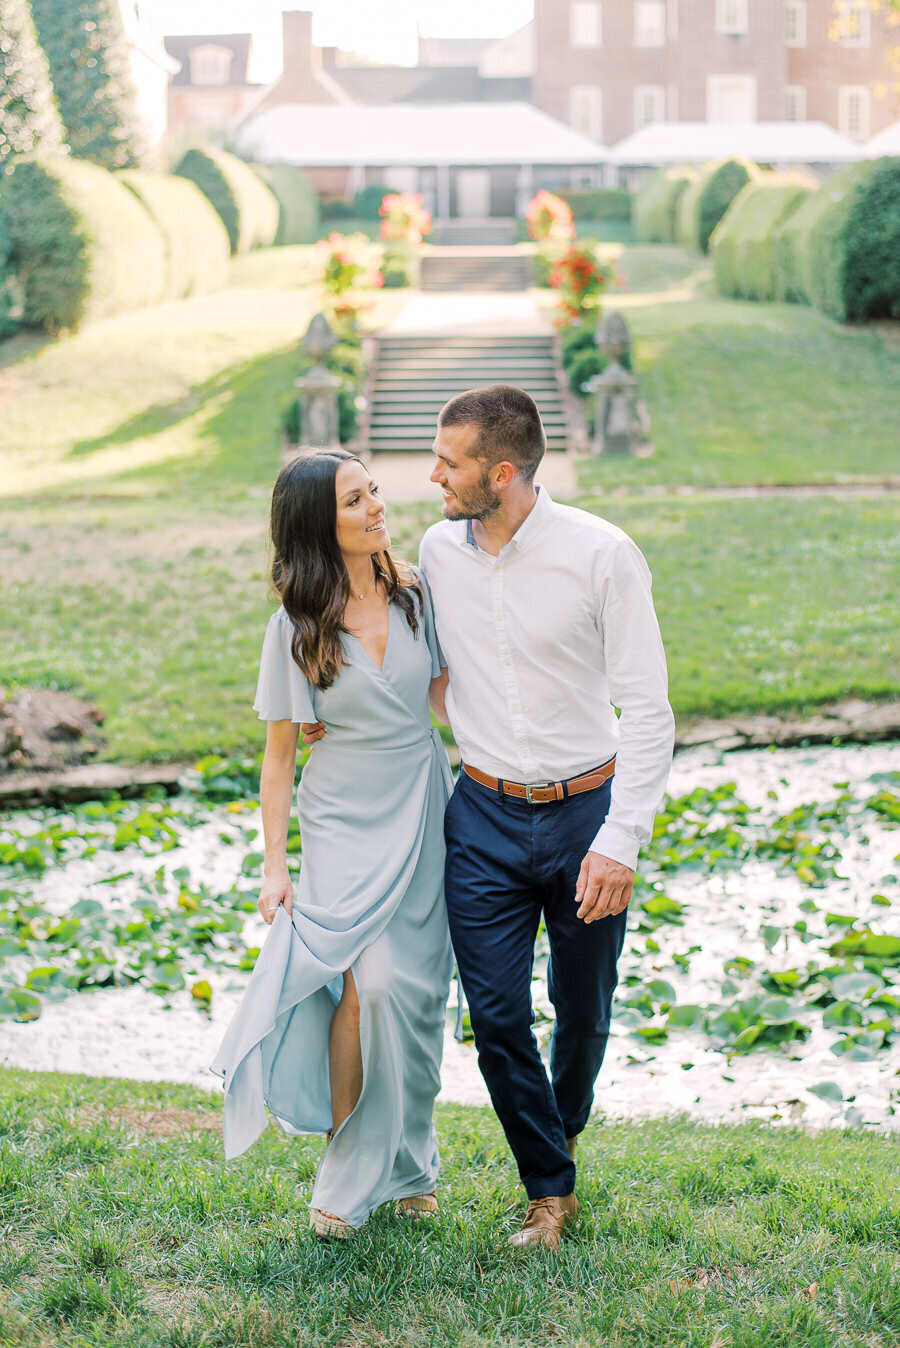 William_Paca_Gardens_Engagement_Session_Megan_Harris_Photography-9